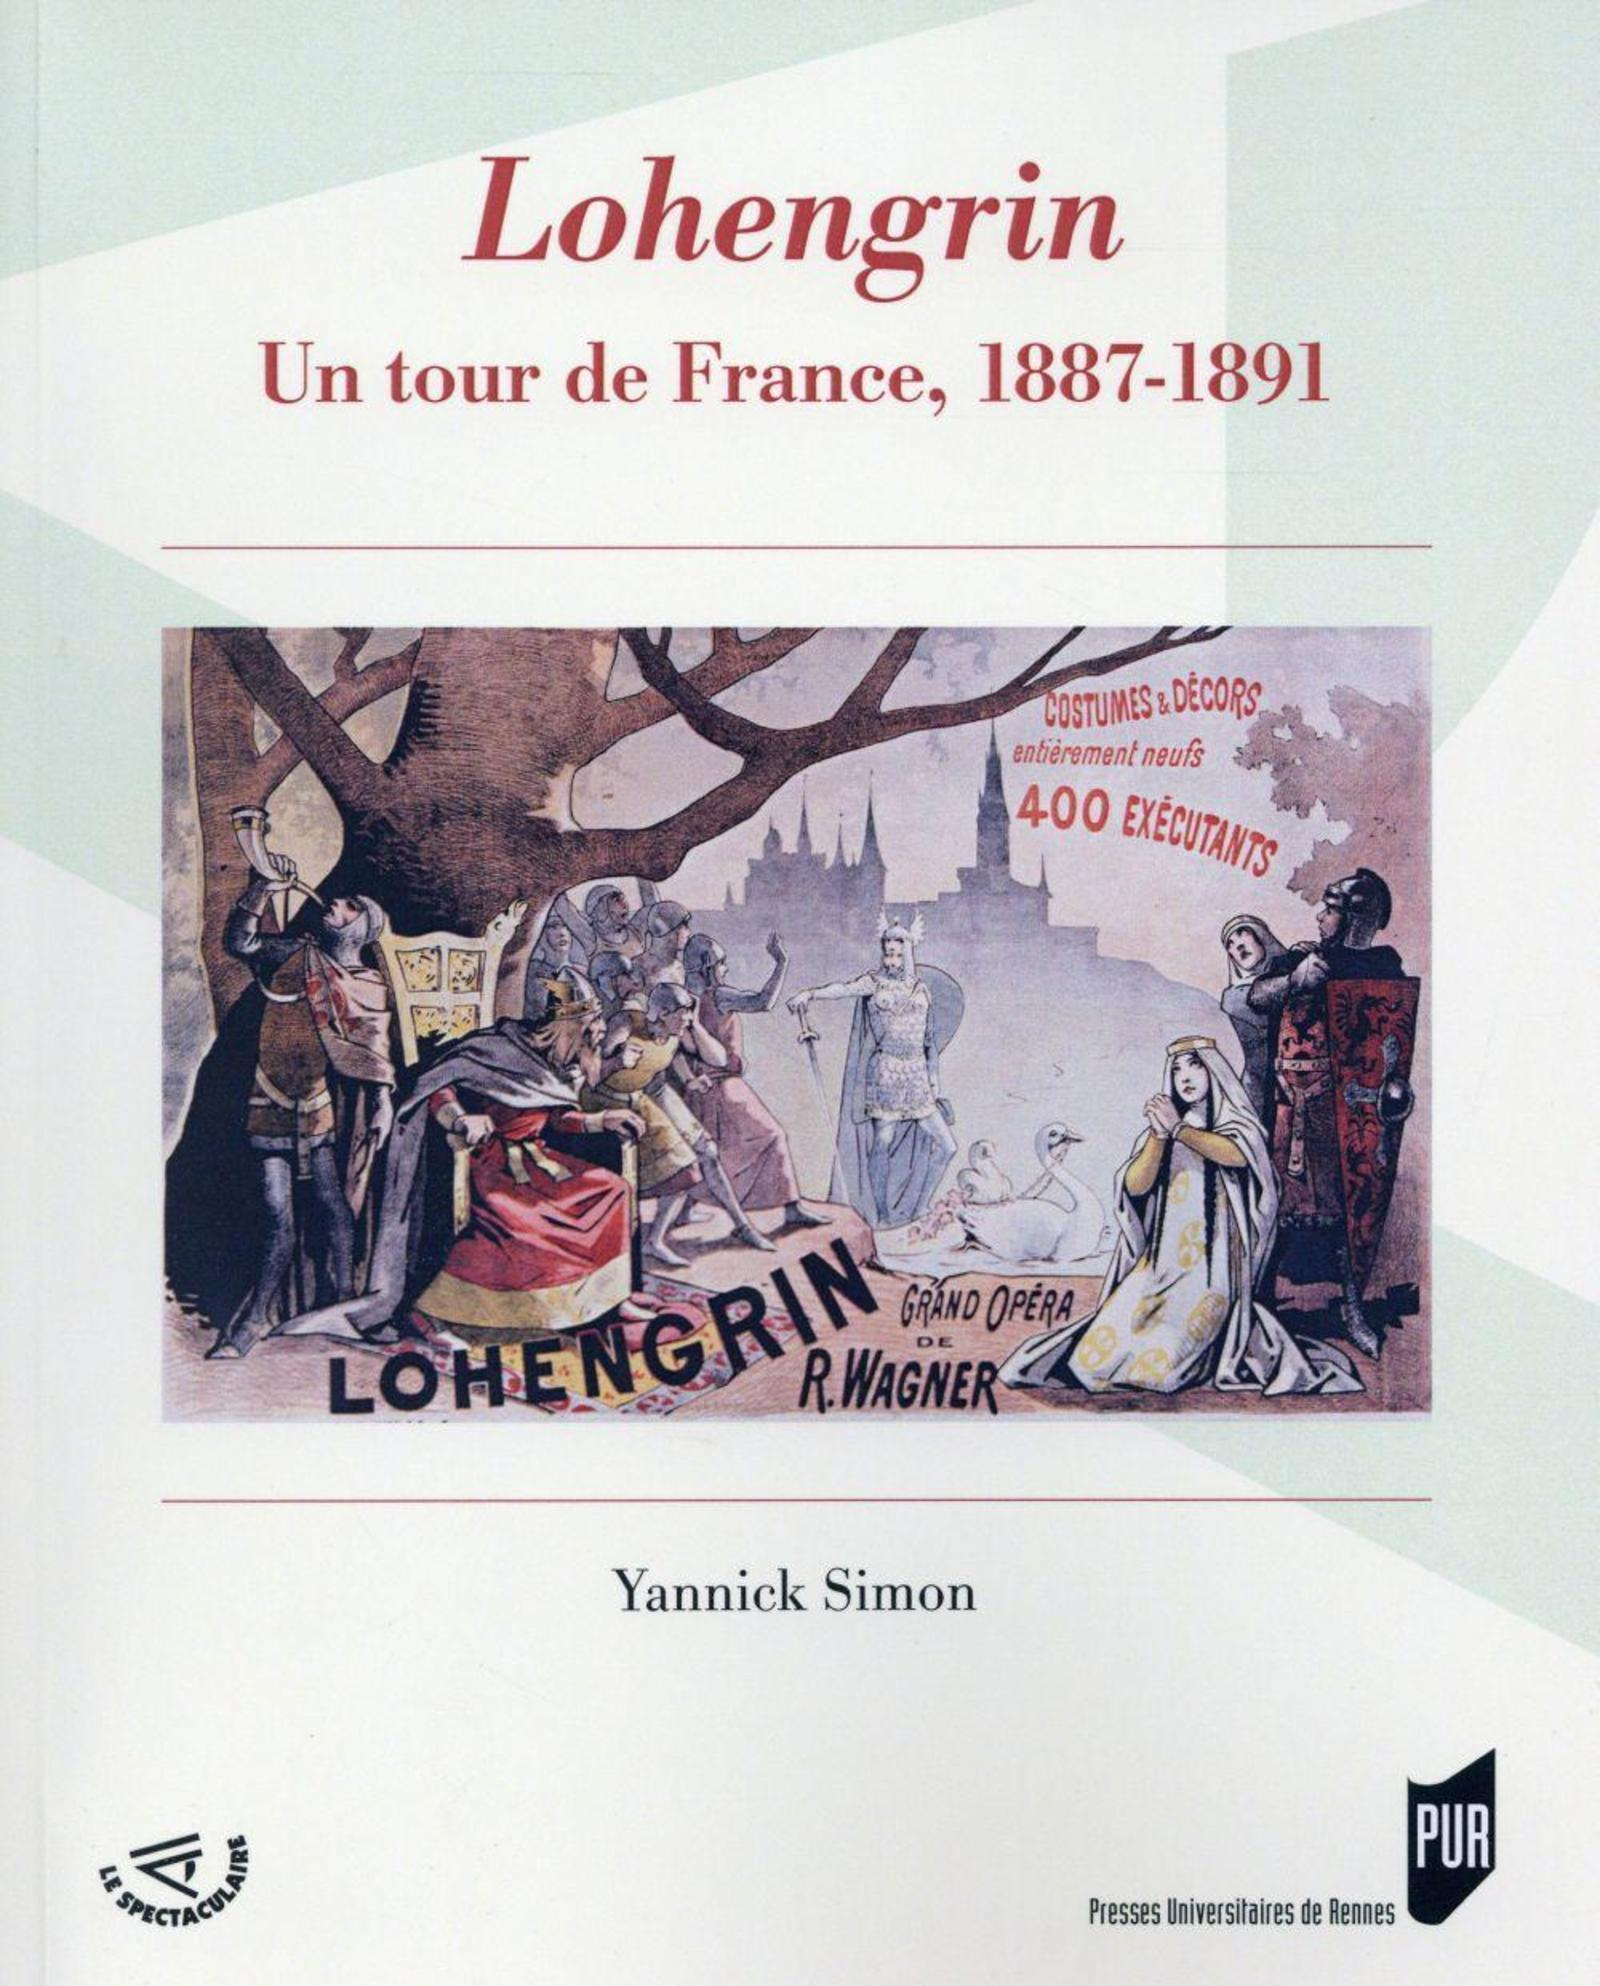 """LOHENGRIN"" UN TOUR DE FRANCE, 1887-1891"